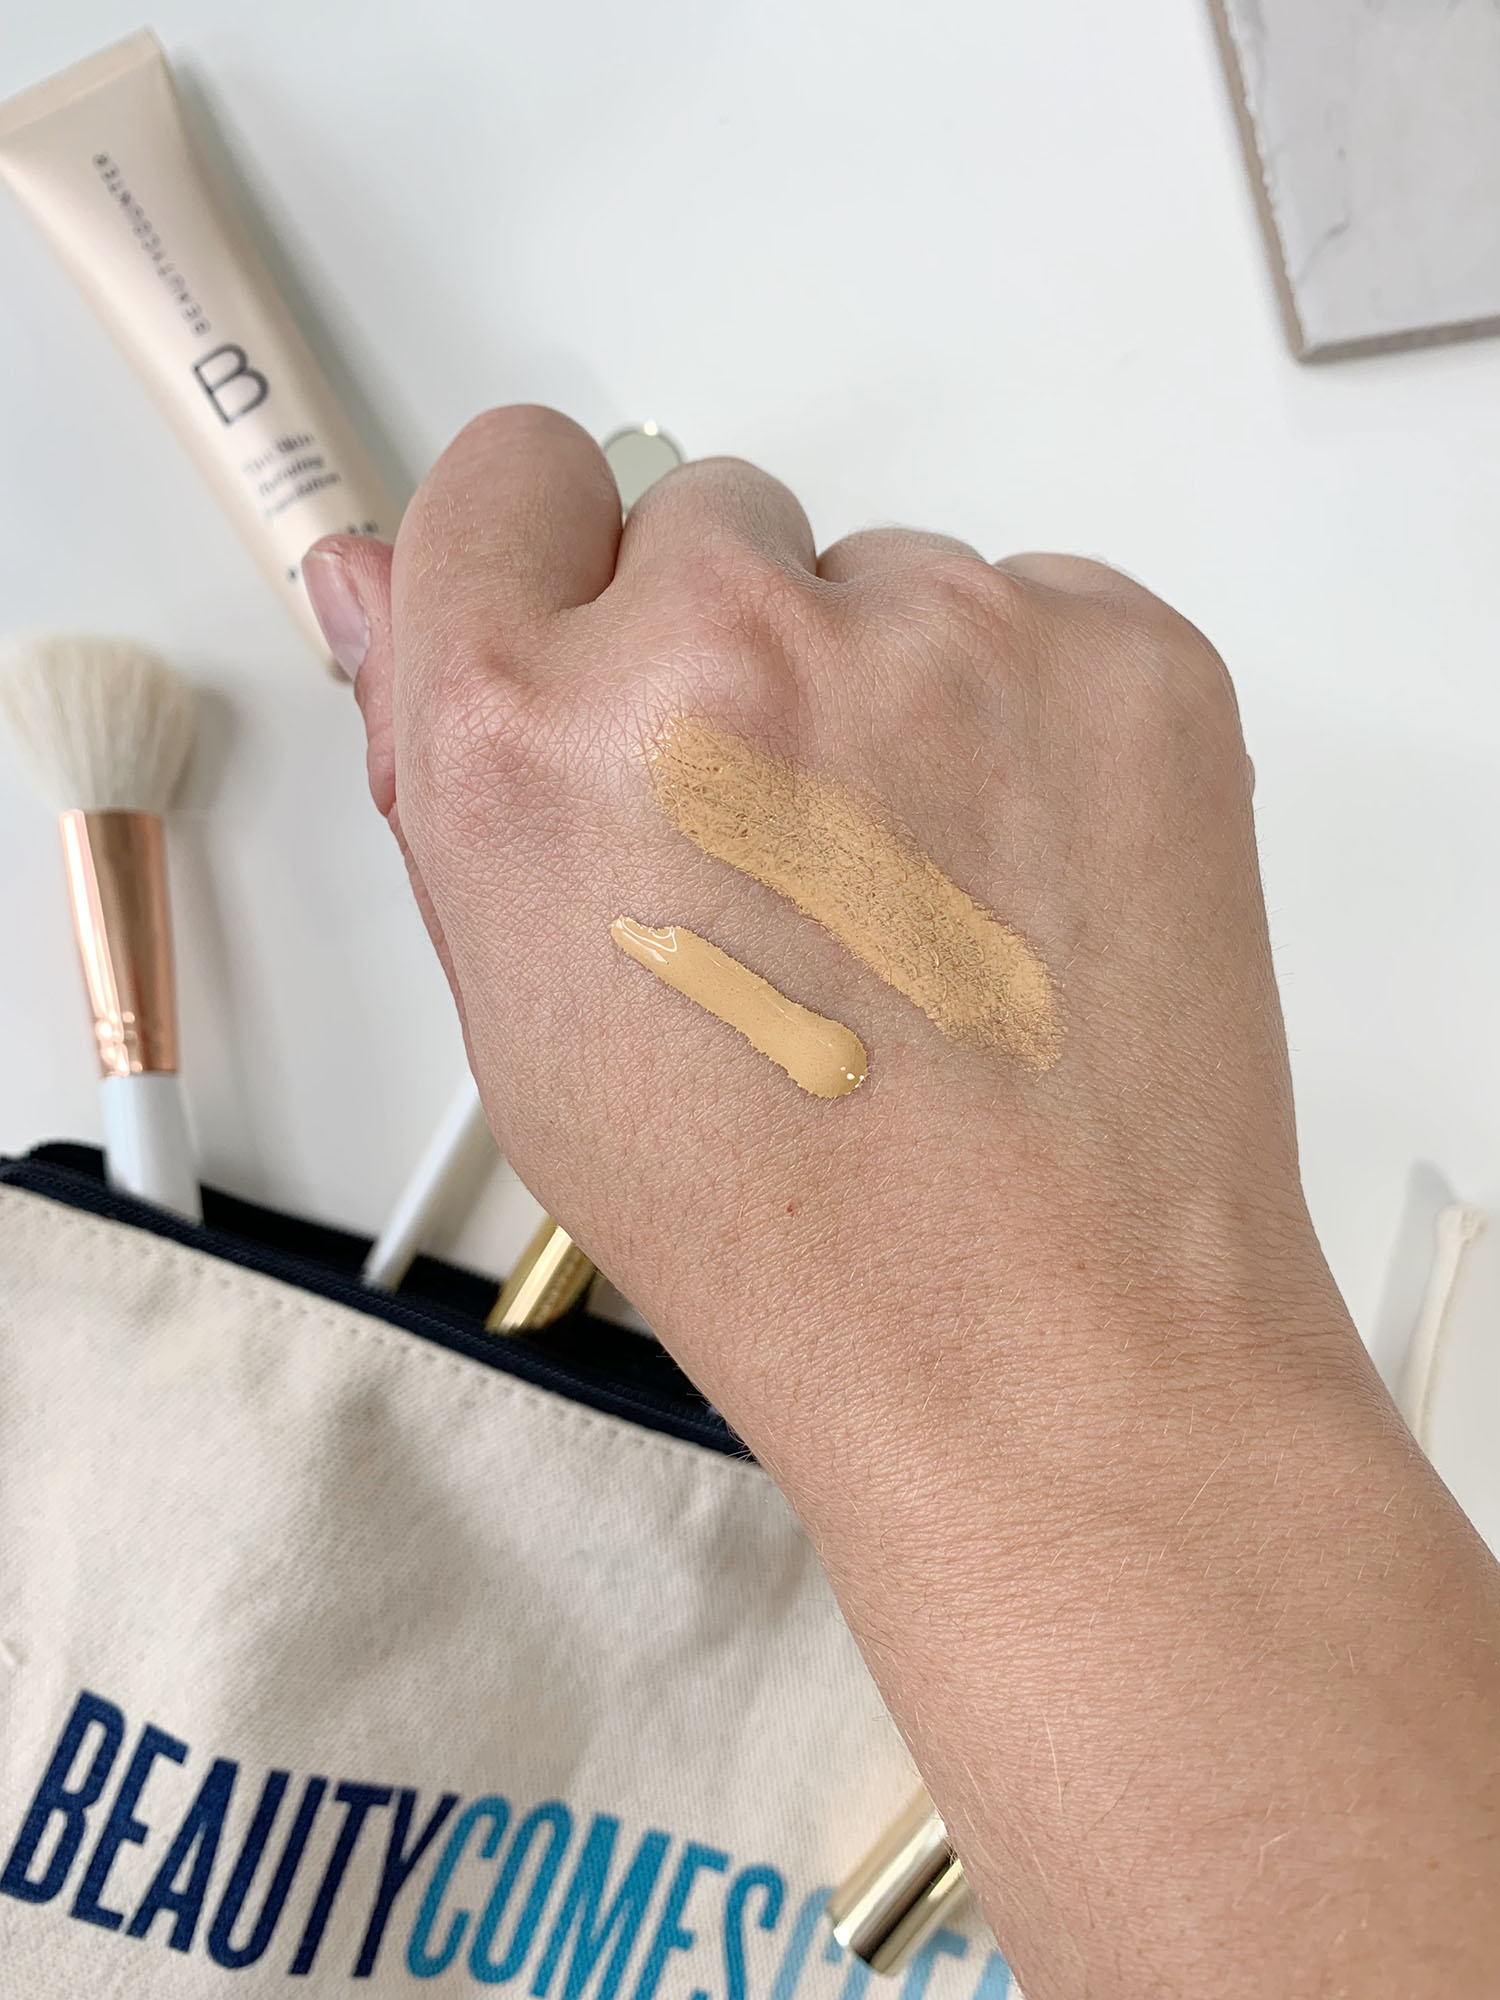 beautycounter tint skin foundation shade honey swatch | brighter darling blog